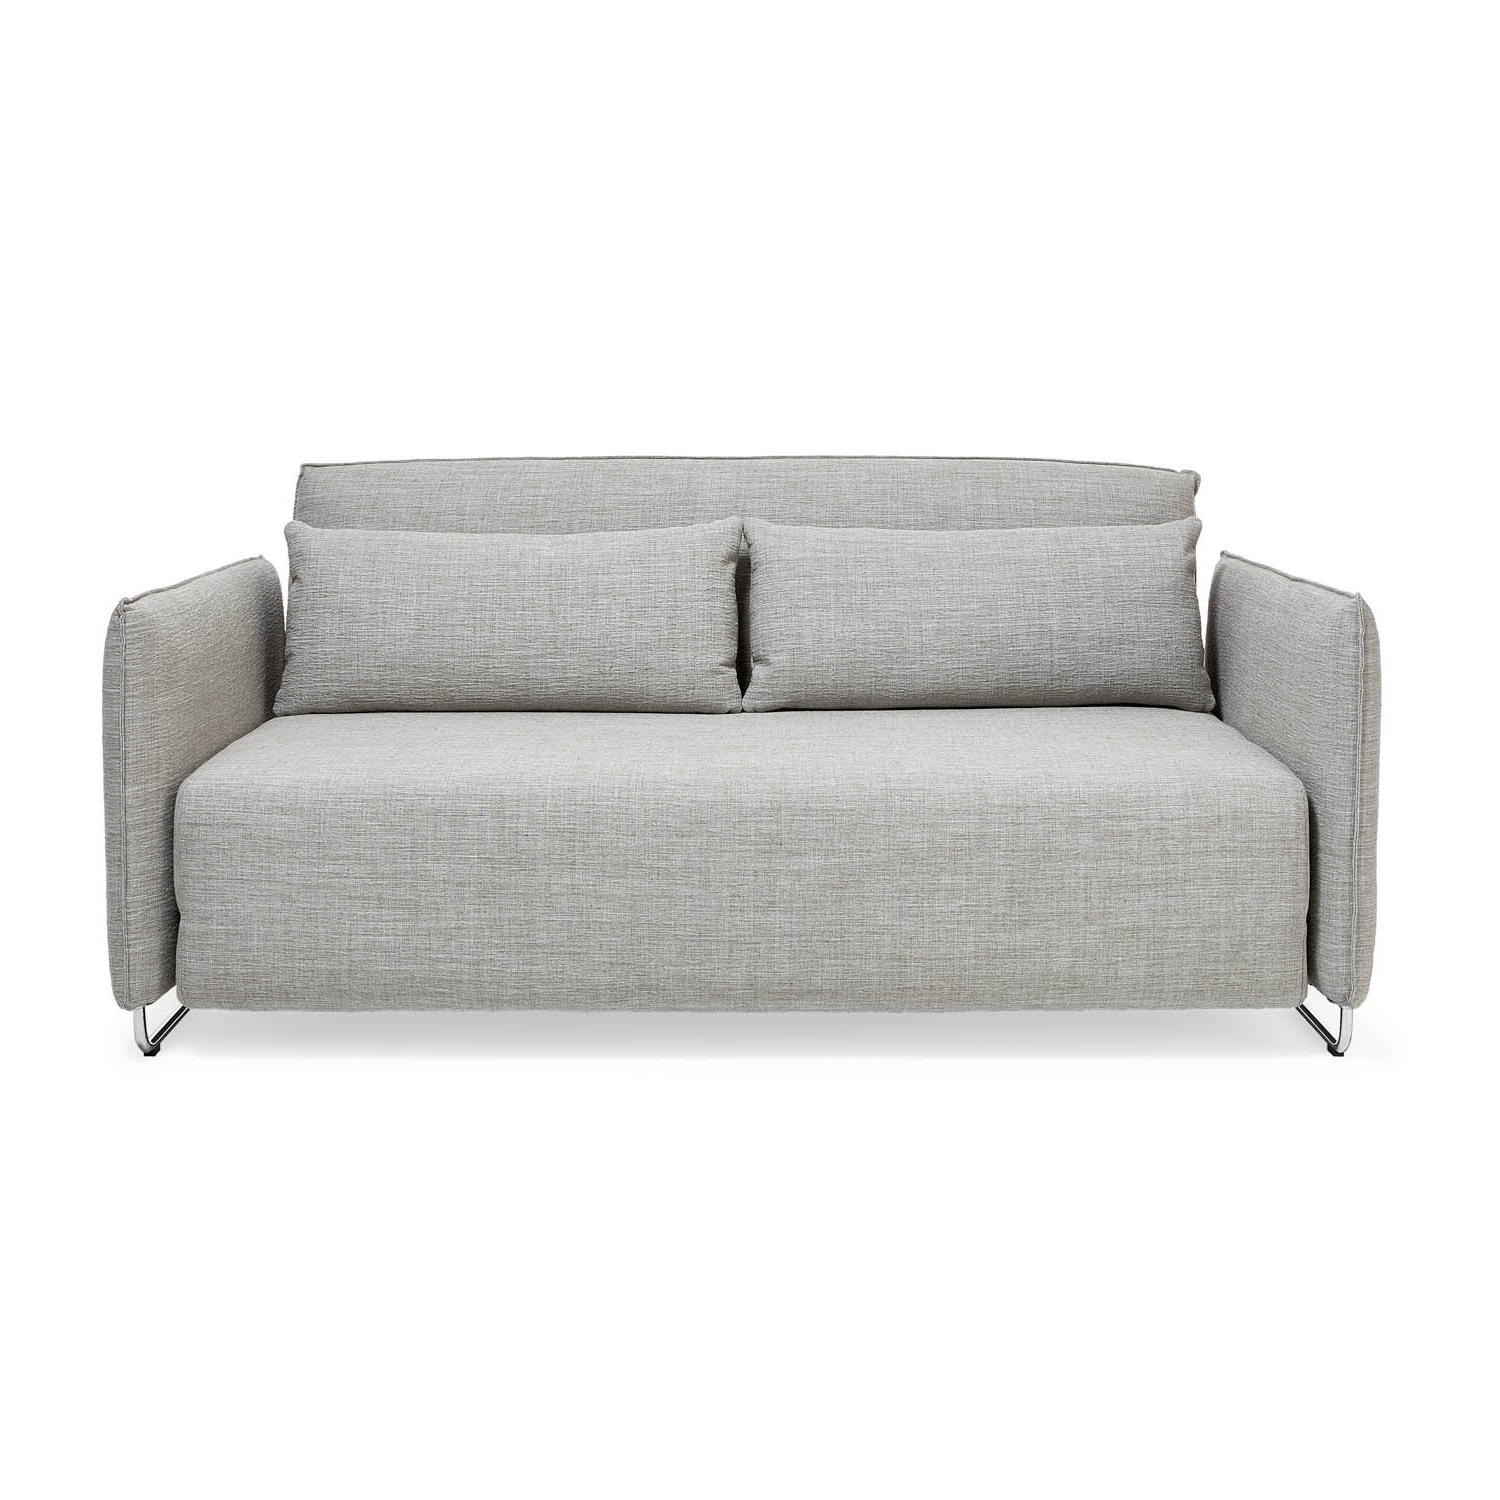 Most Up To Date Quincy Il Sectional Sofas Regarding Furniture : Mattress Firm Quincy Il Mattress Firm Mattress (View 10 of 20)